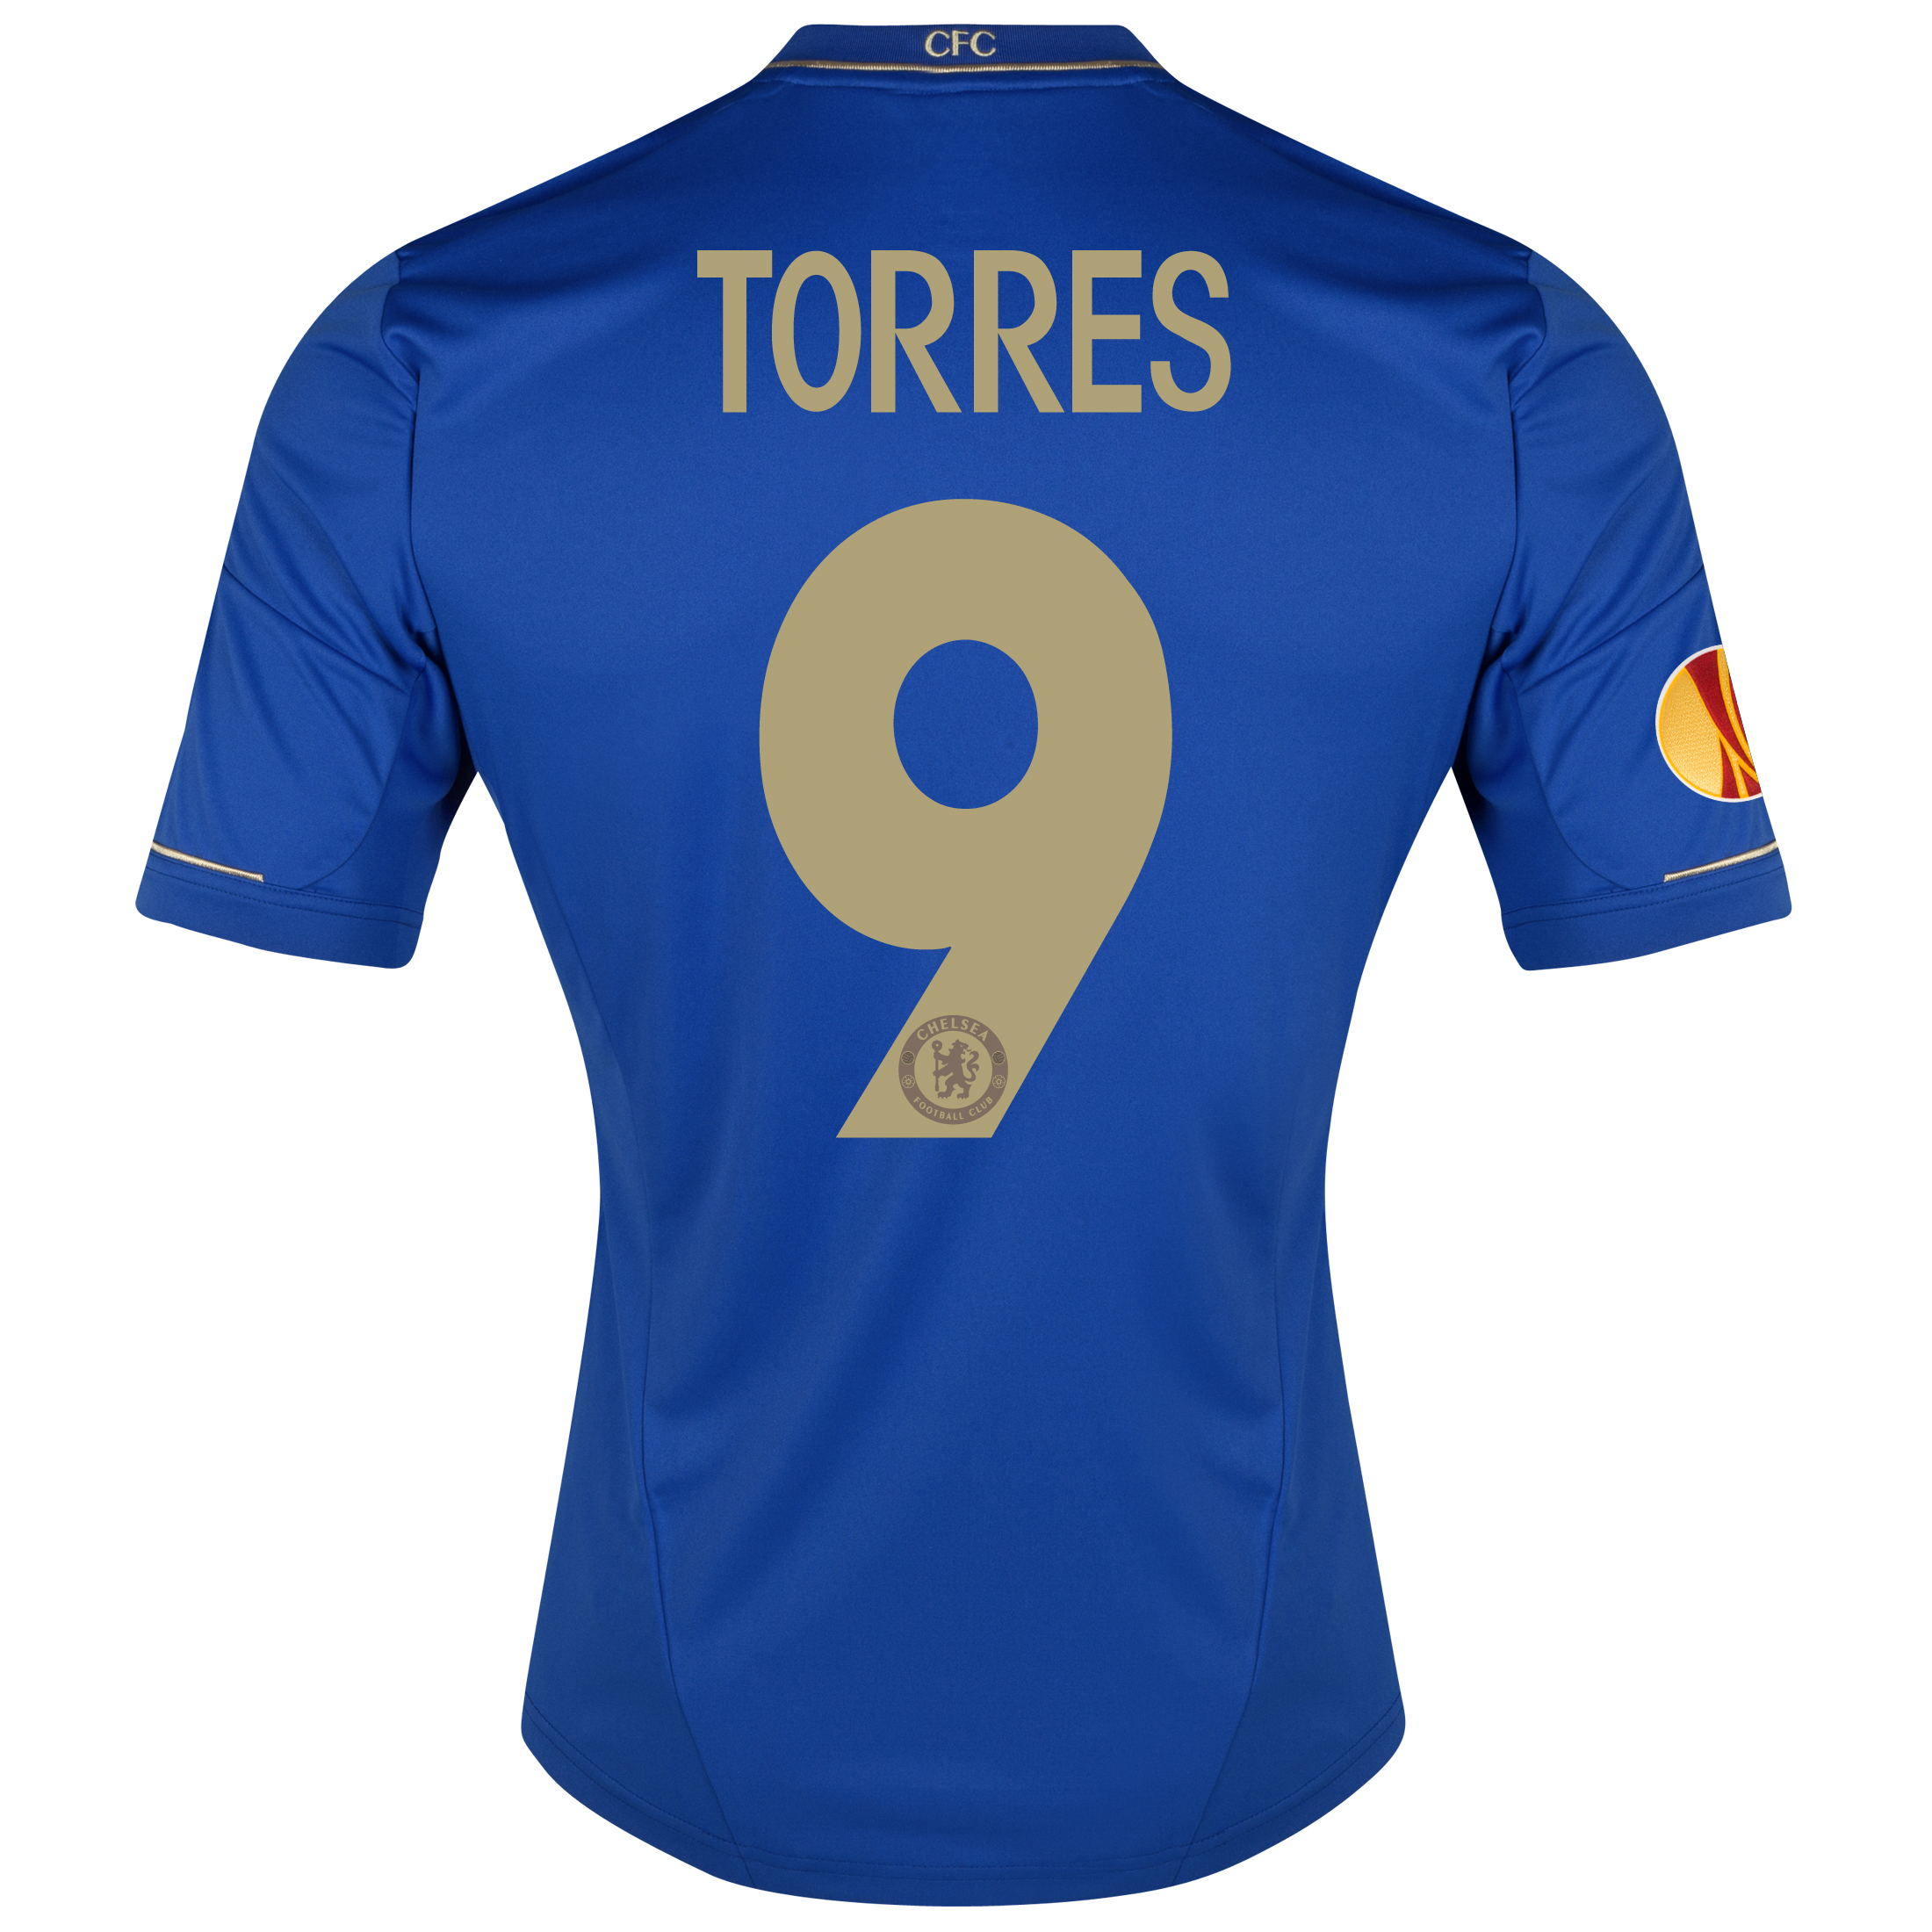 Chelsea UEFA Europa League Home Shirt 2012/13 - Outsize with Torres 9 printing Including Europa Badge